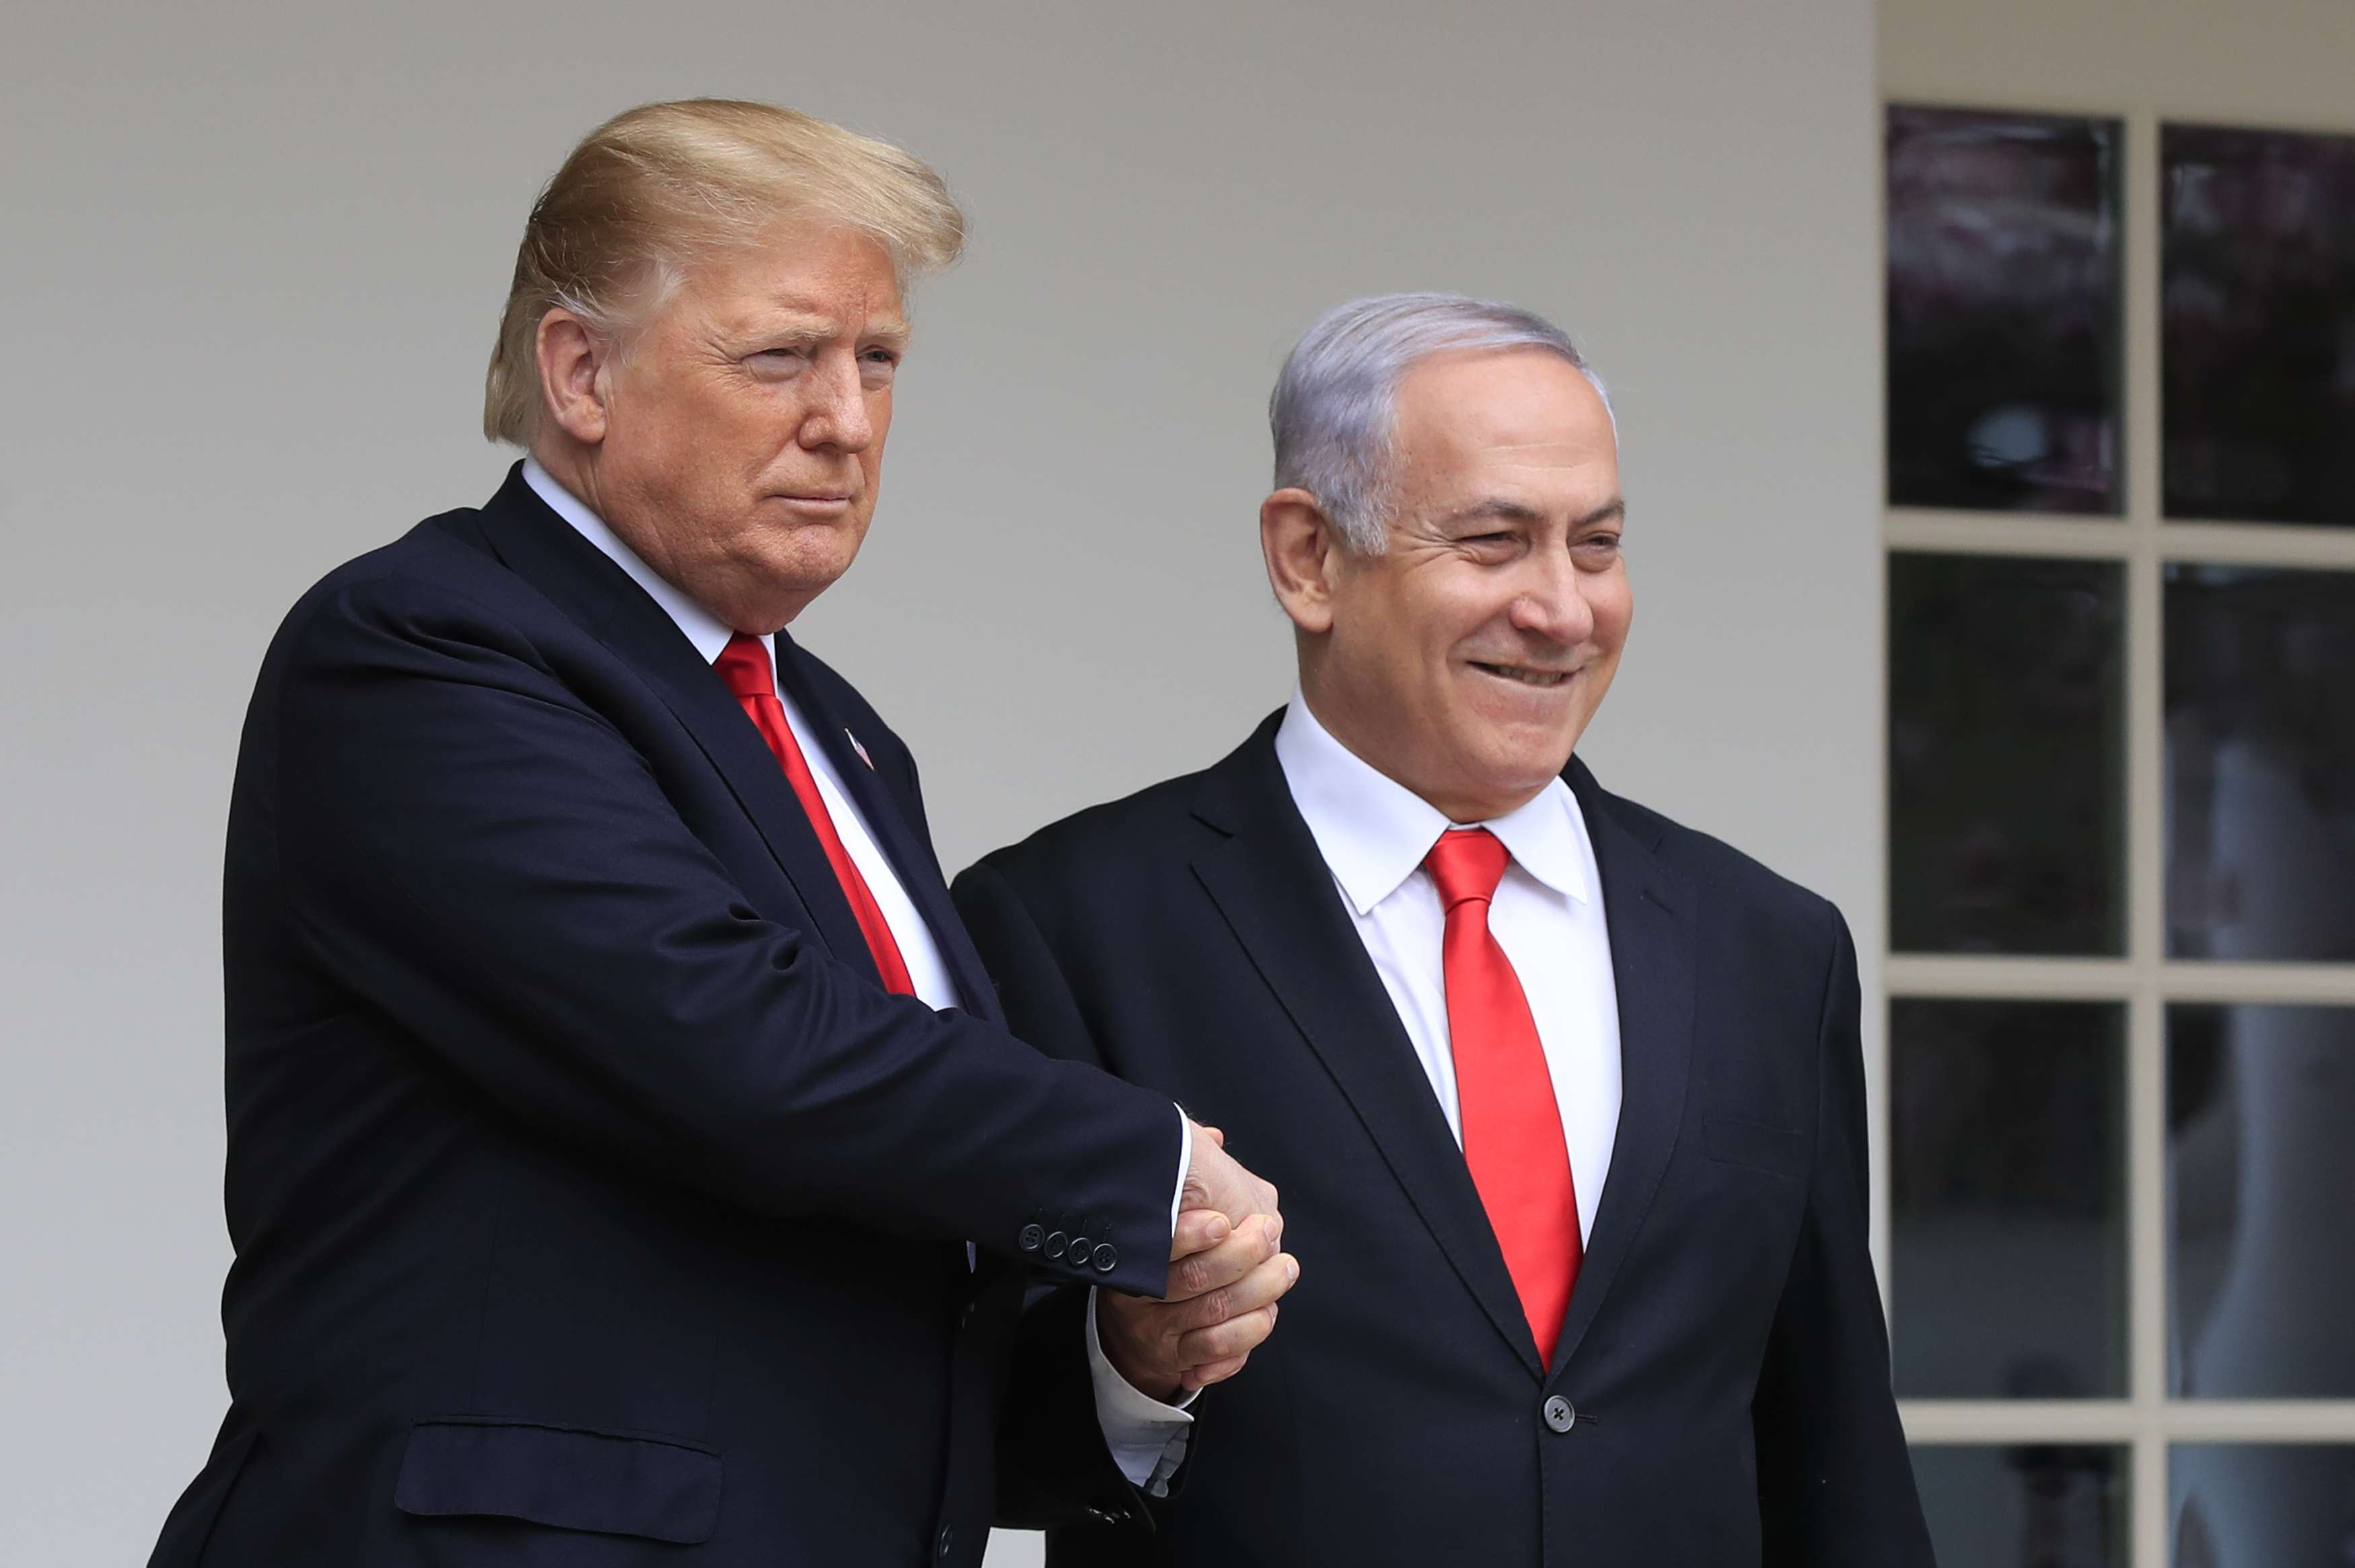 US President Donald Trump welcomes visiting Israeli Prime Minister Binyamin Netanyahu to the White House in Washington, March 25. (AP)